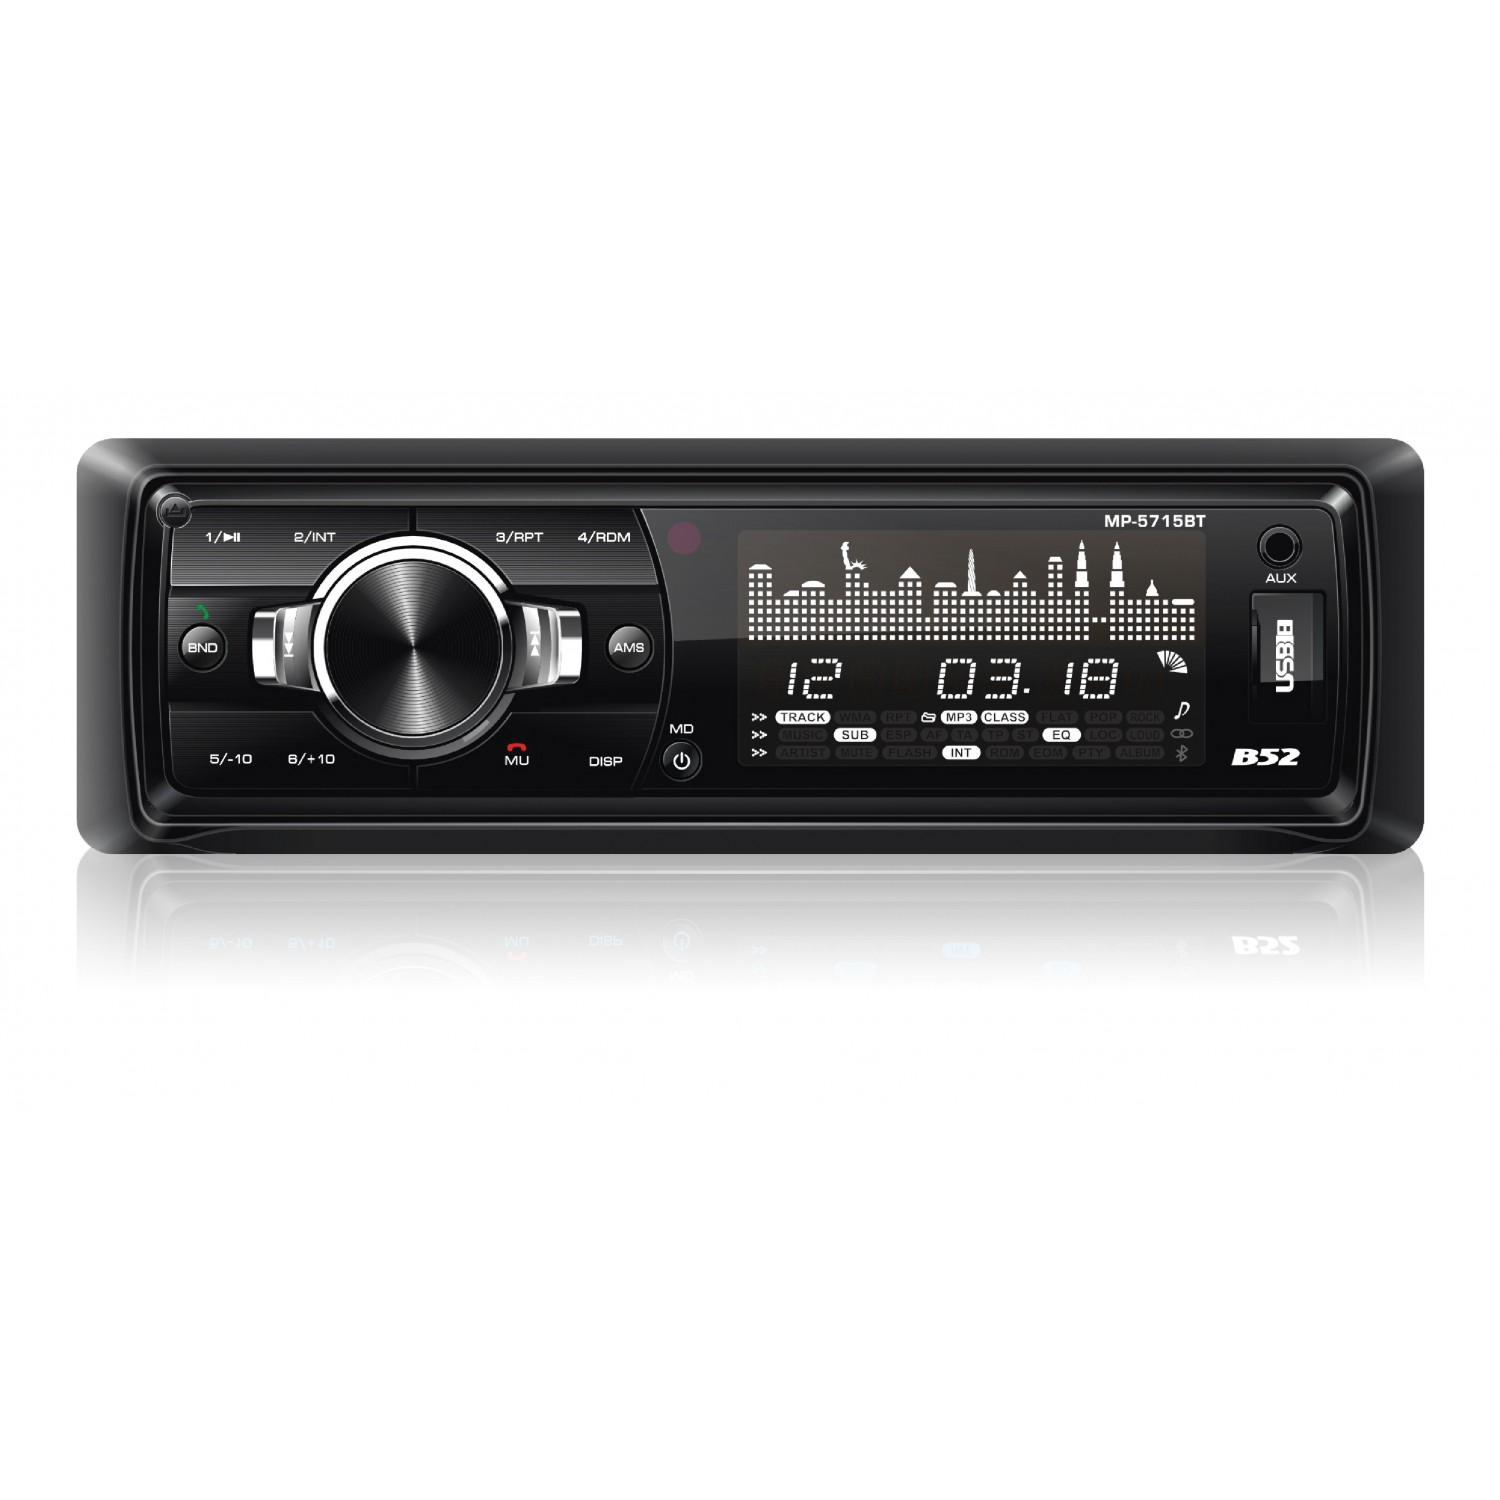 Rádio Automotivo com MP3 e Bluetooth B52 MP 5715 BT